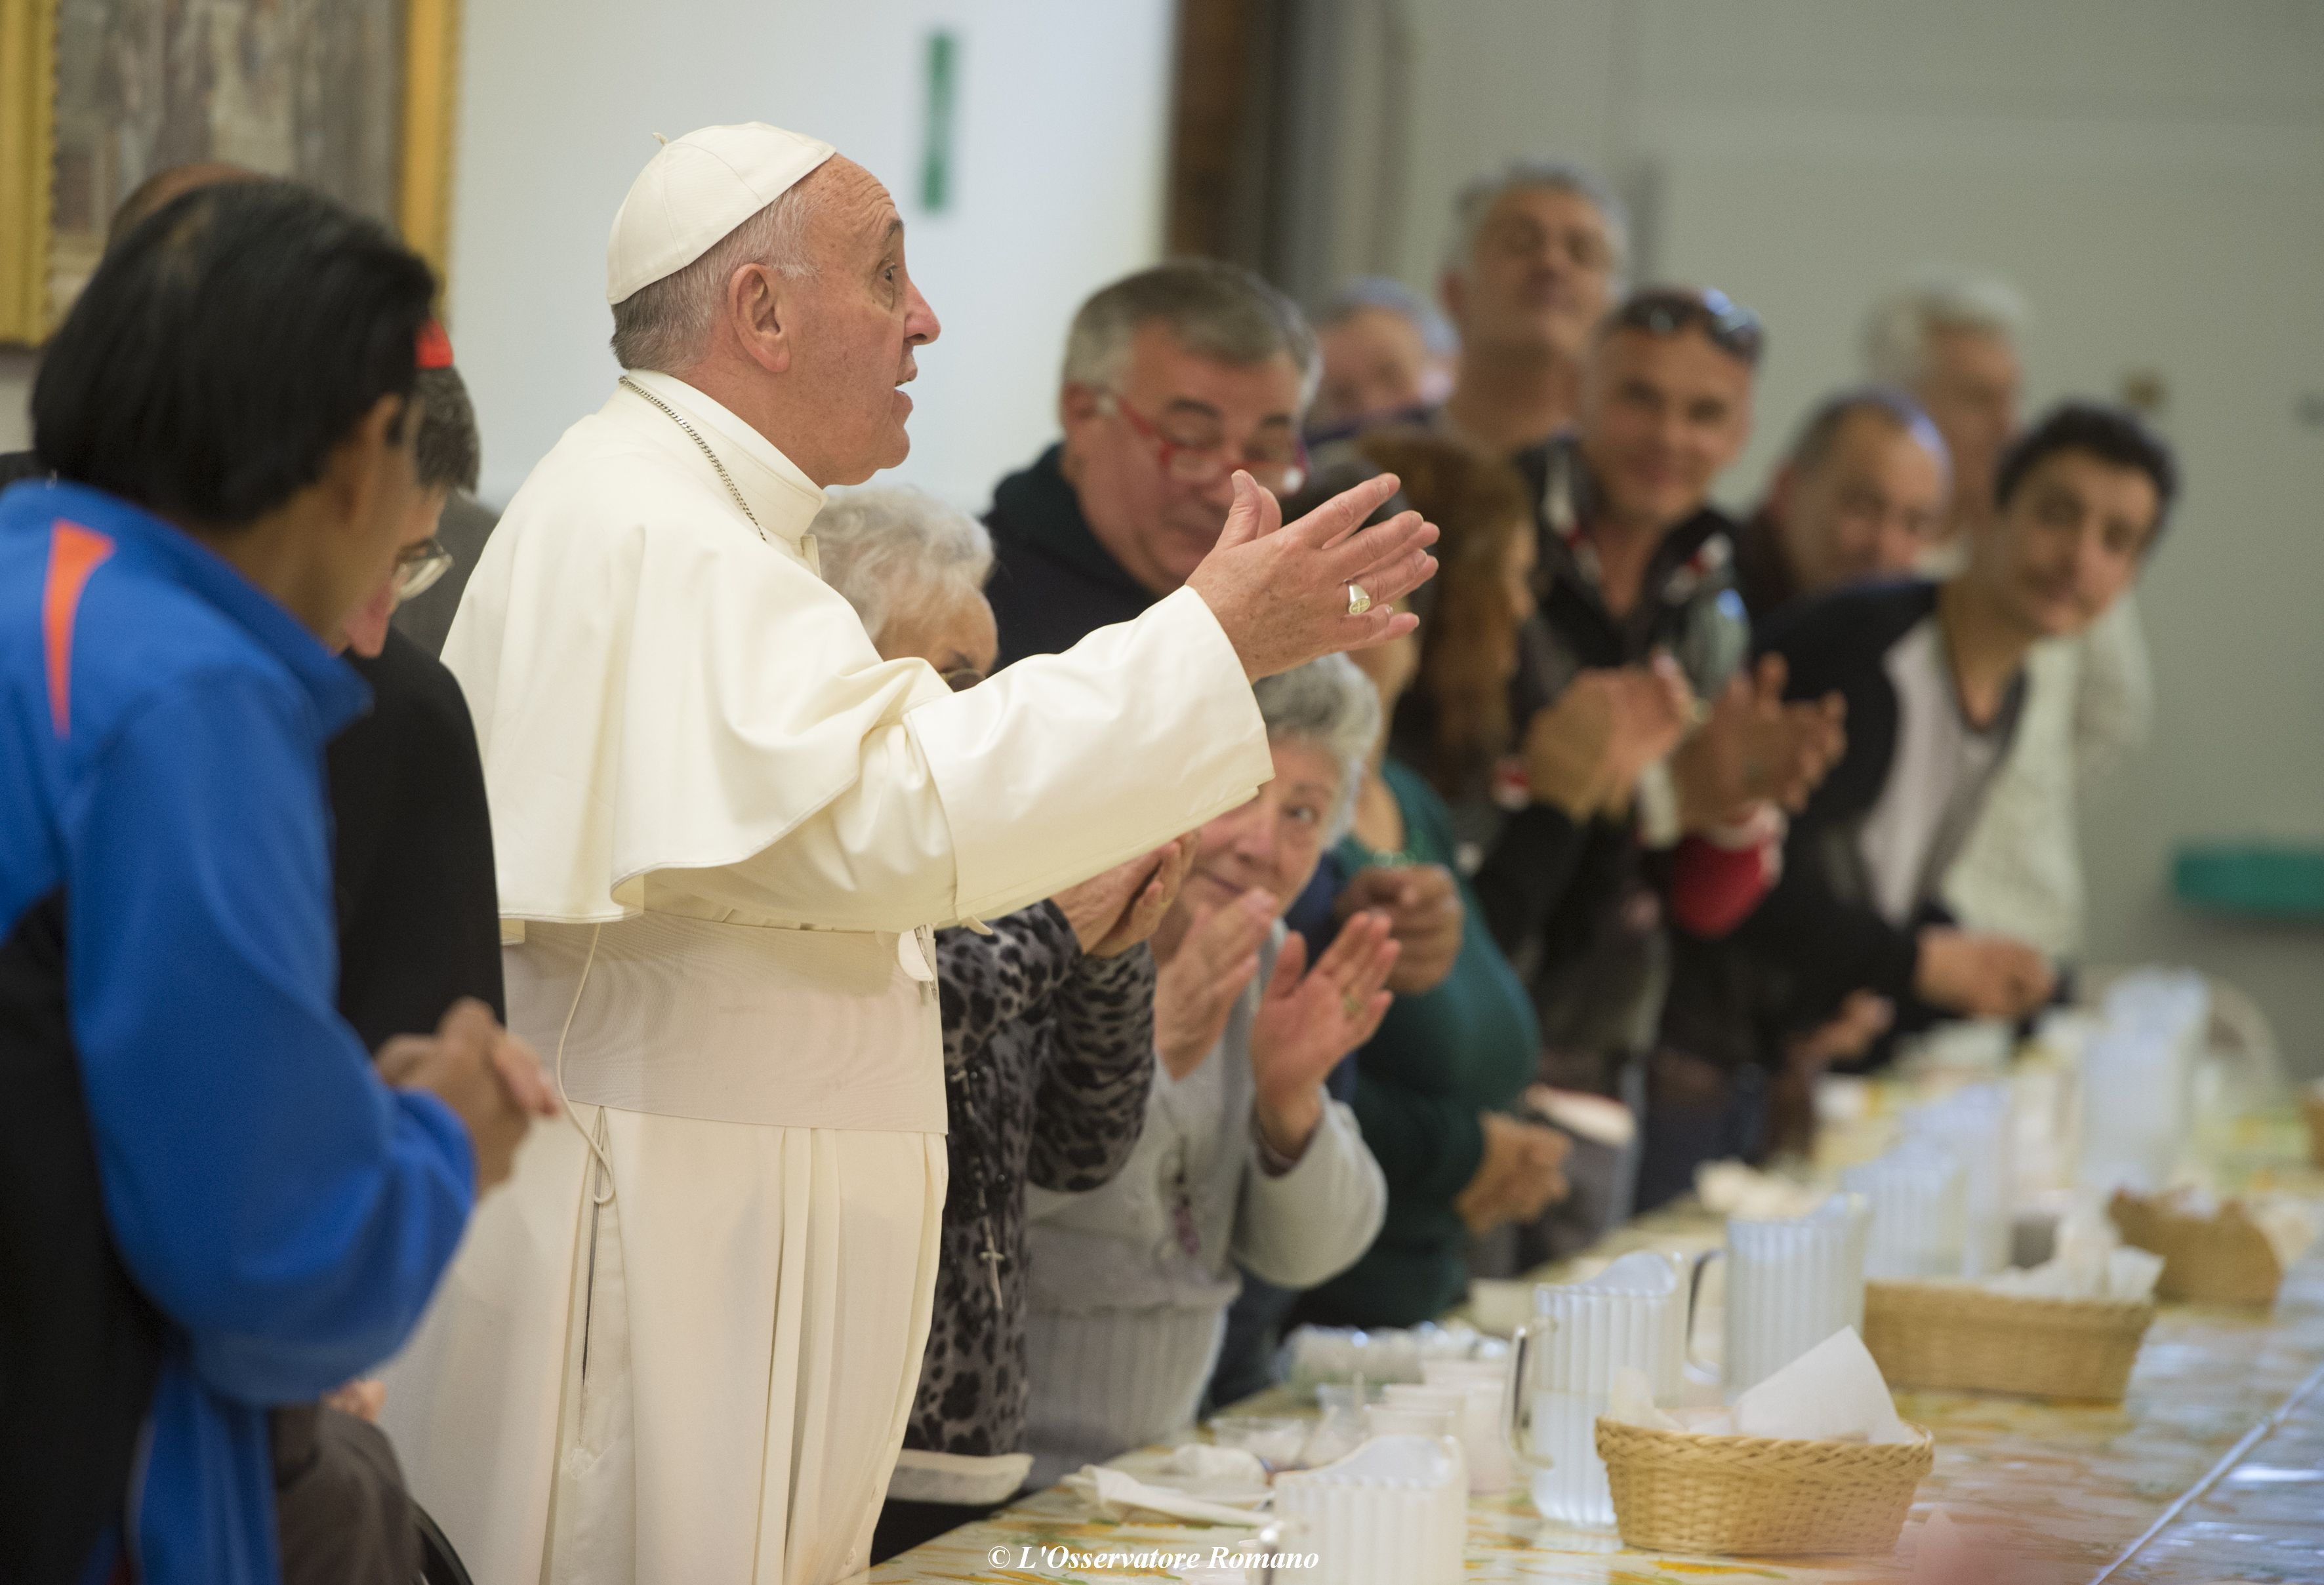 Lunch with the city's poor at St. Francis' Soup Kitchen (Mensa di San Francesco) in Florence